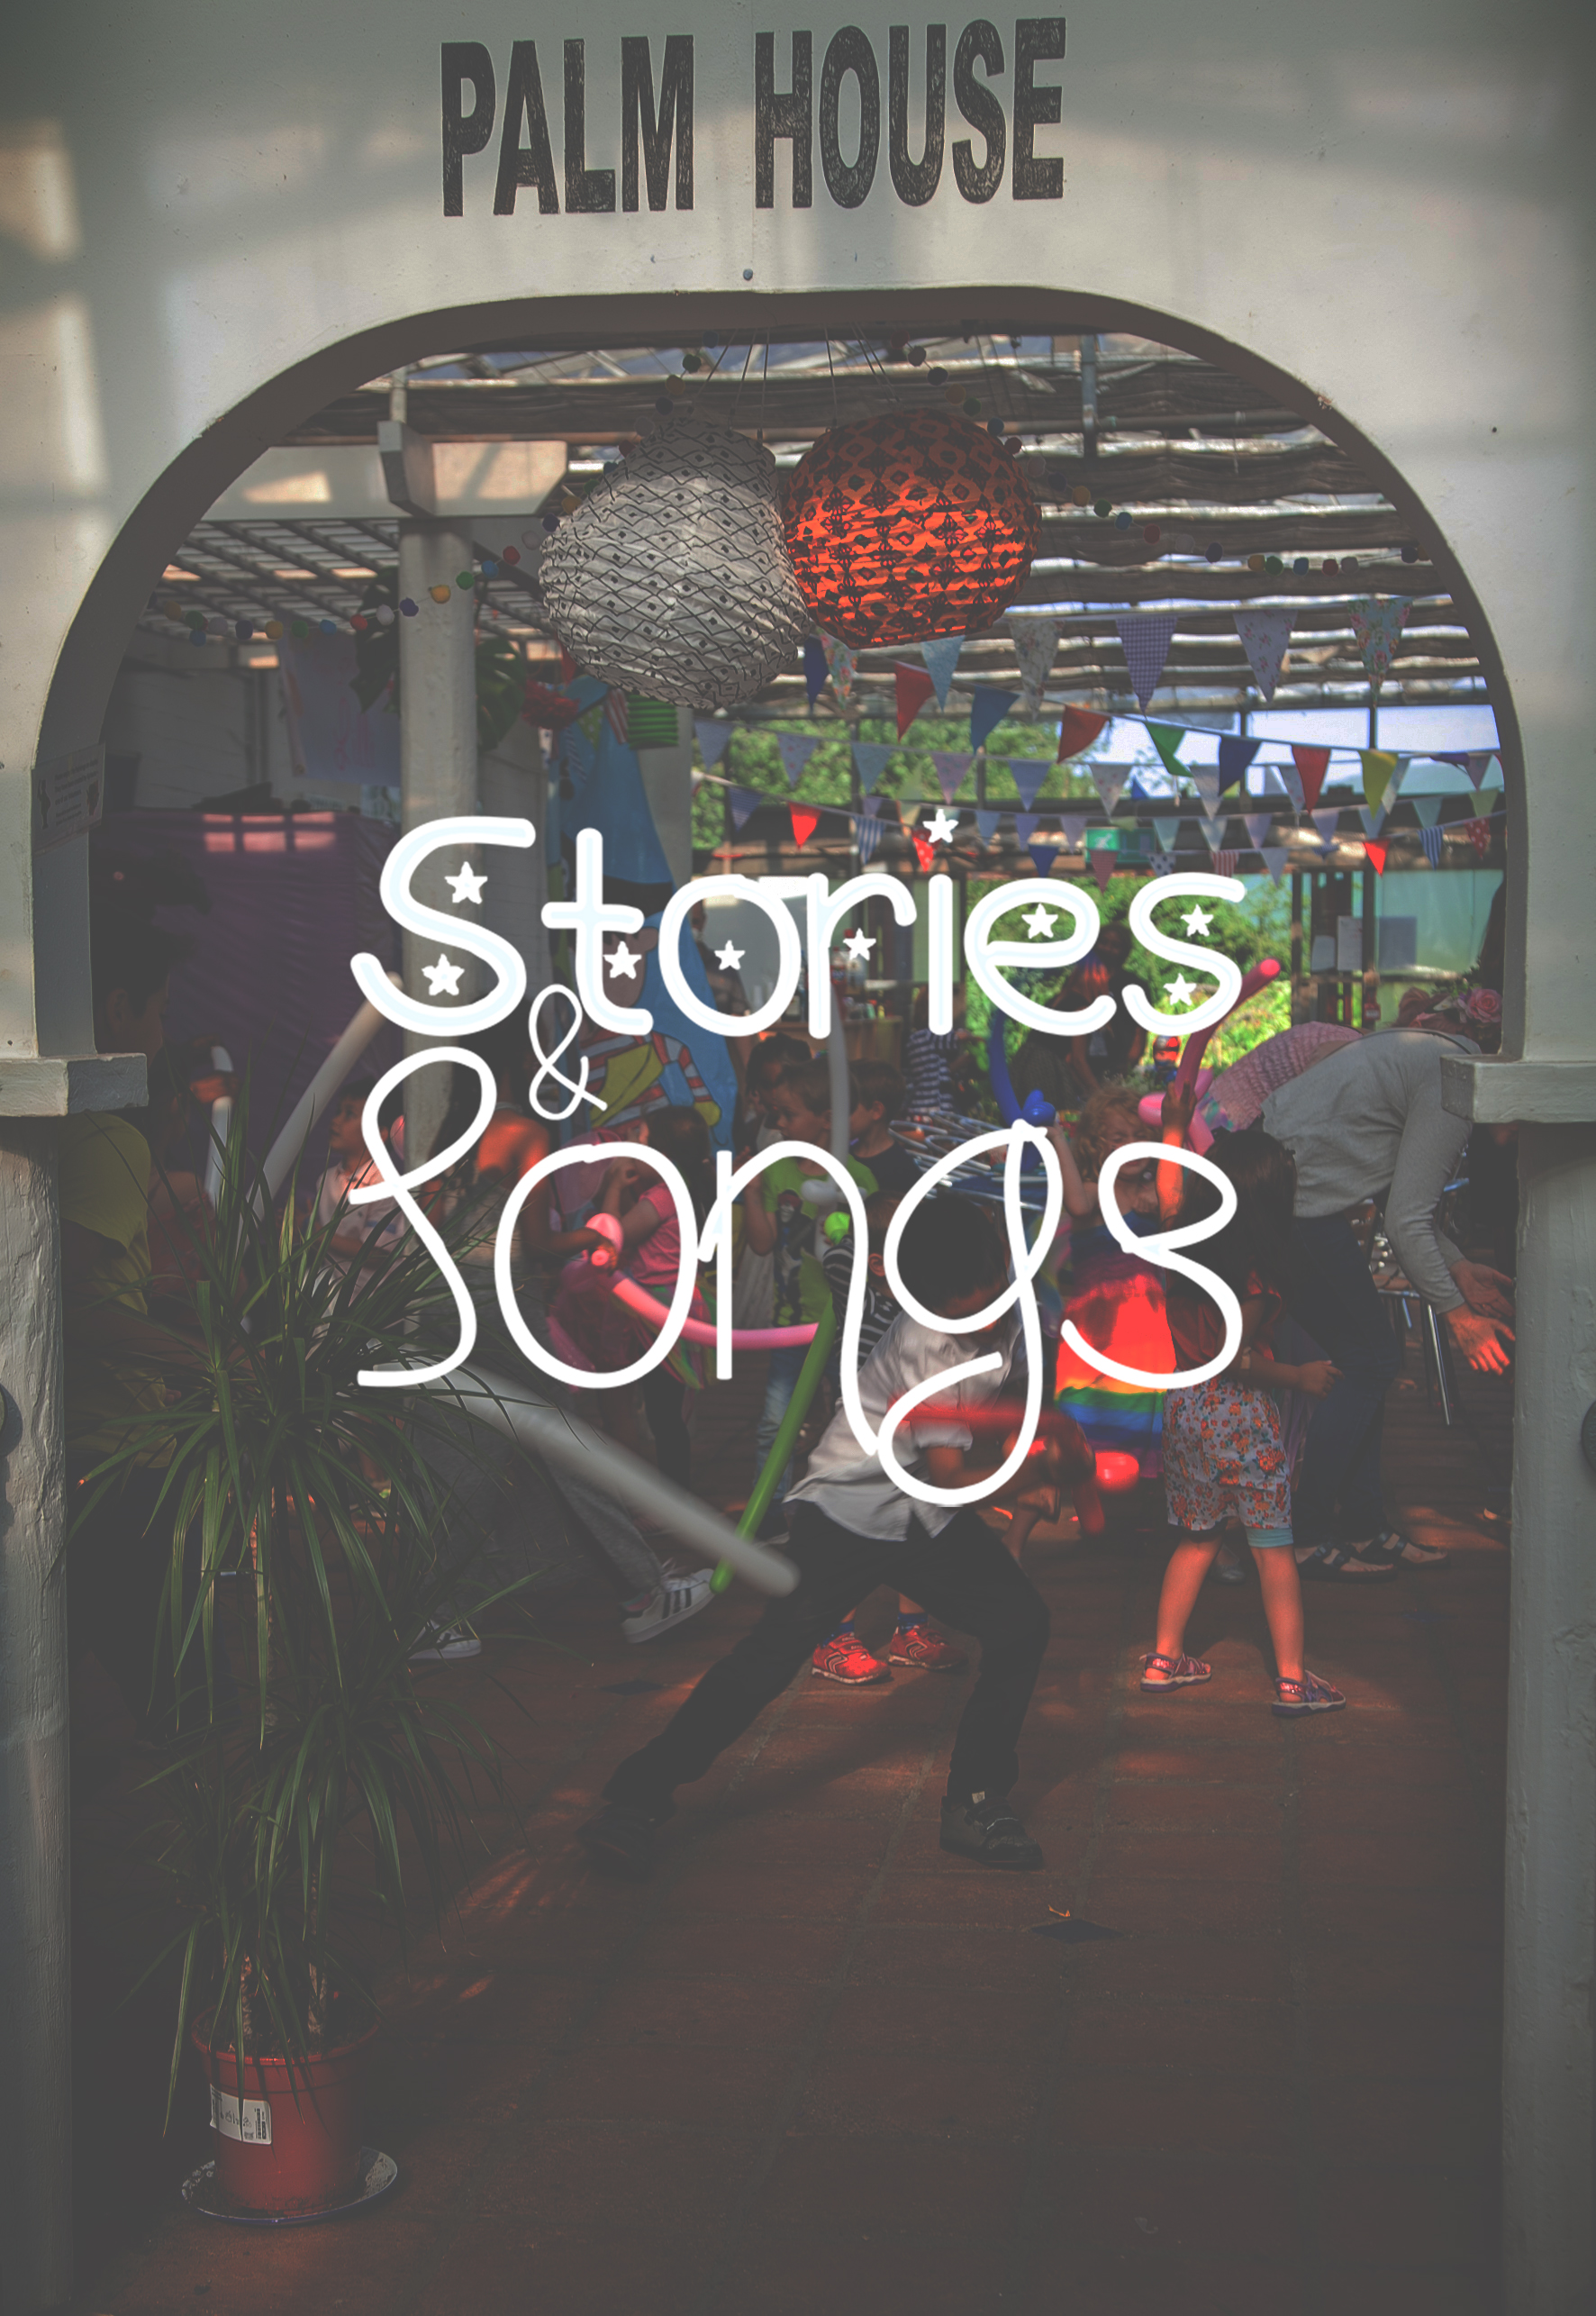 IMAGE STORIES AND SONGS.jpg